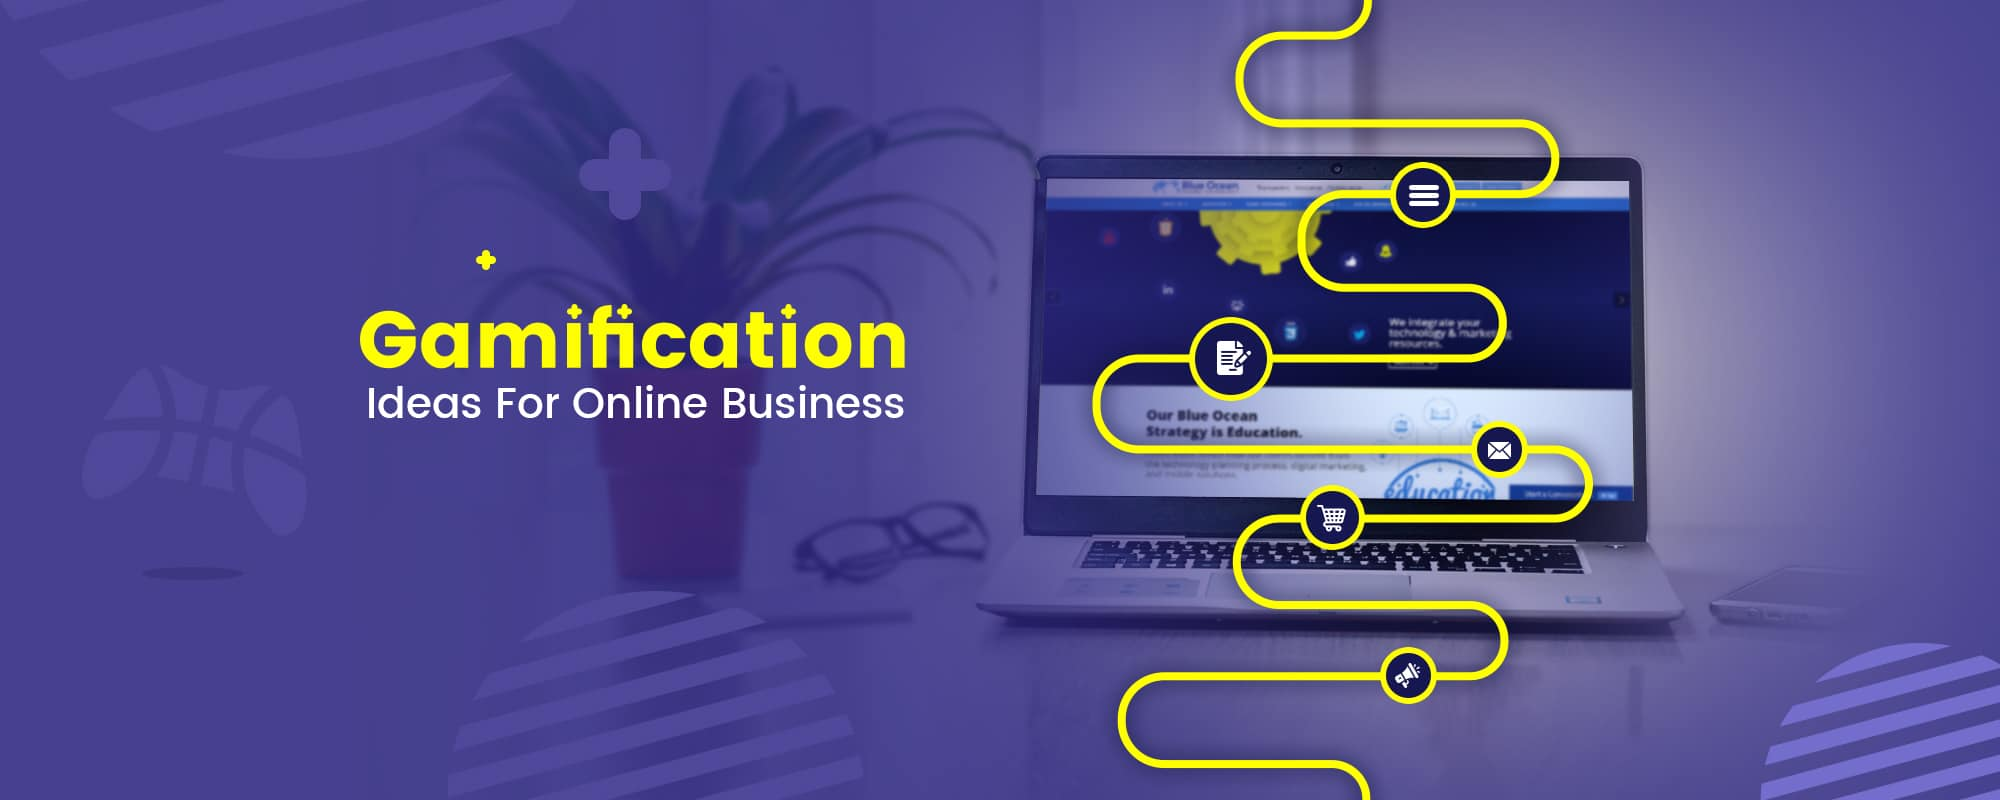 Best Gamification Examples & Ideas for Online Business